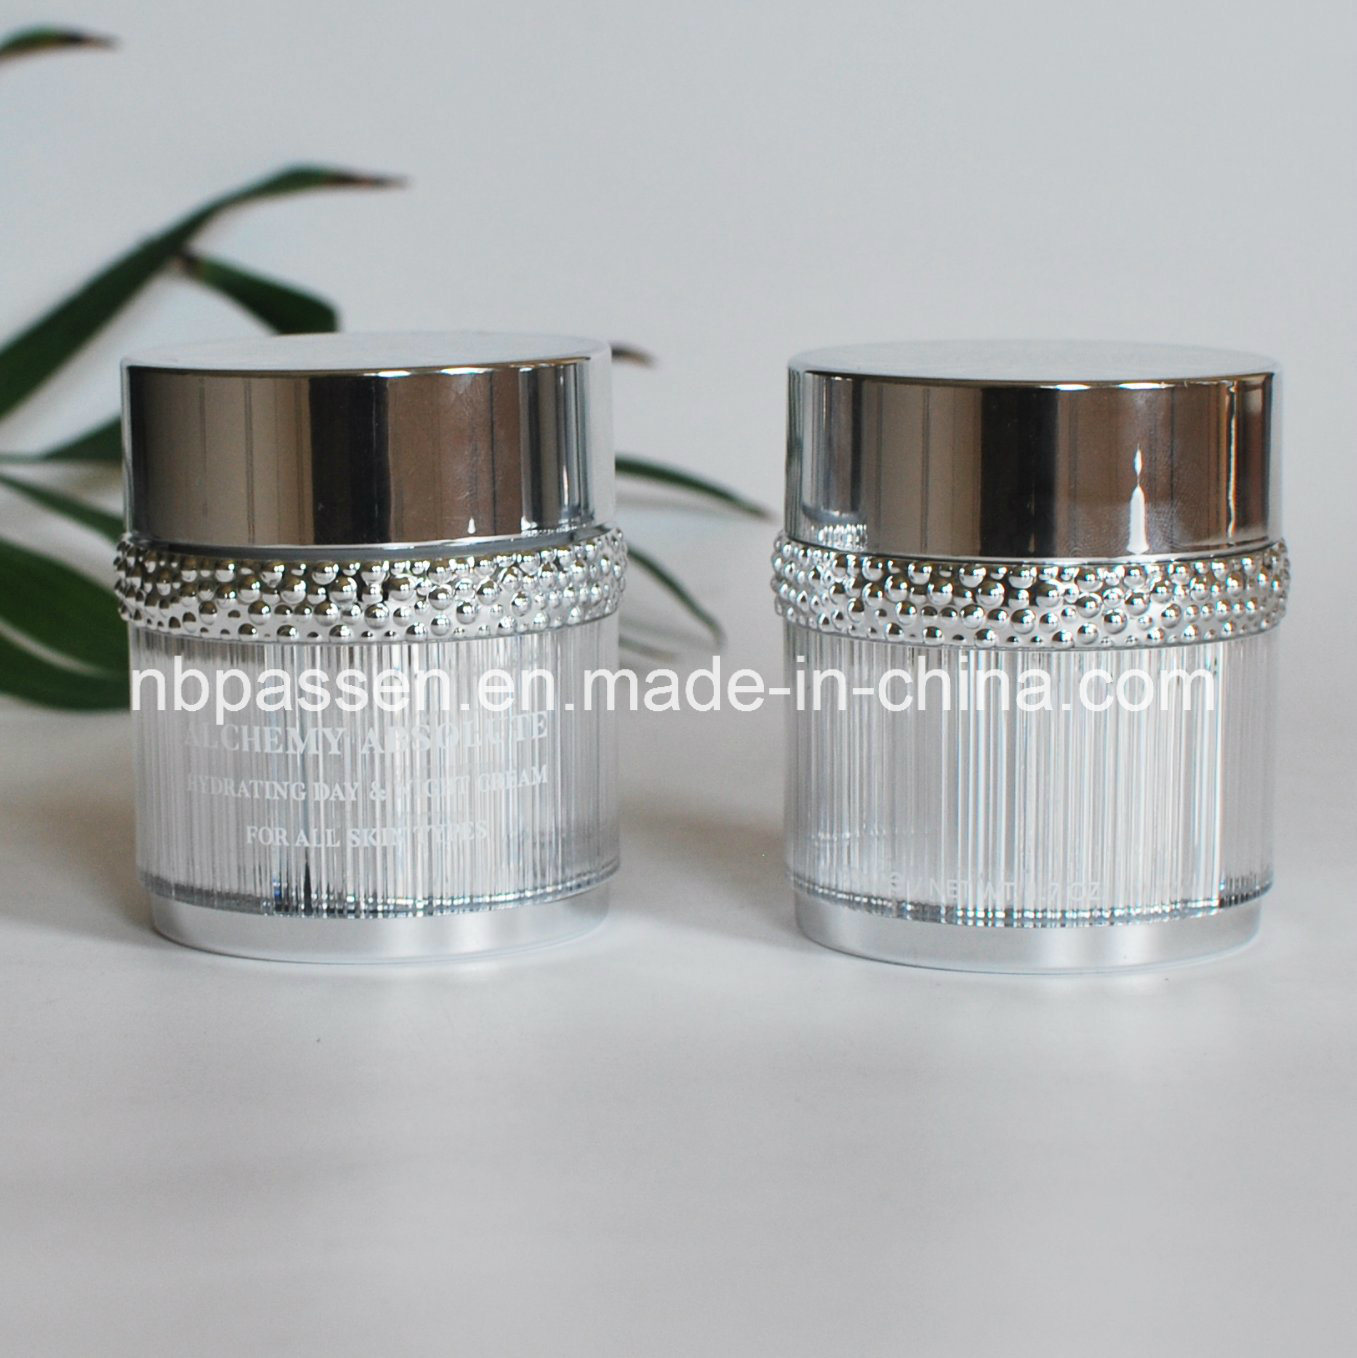 50g Glossy Silver Acrylic Cosmetic Jar with Particle Ring (PPC-NEW-101)